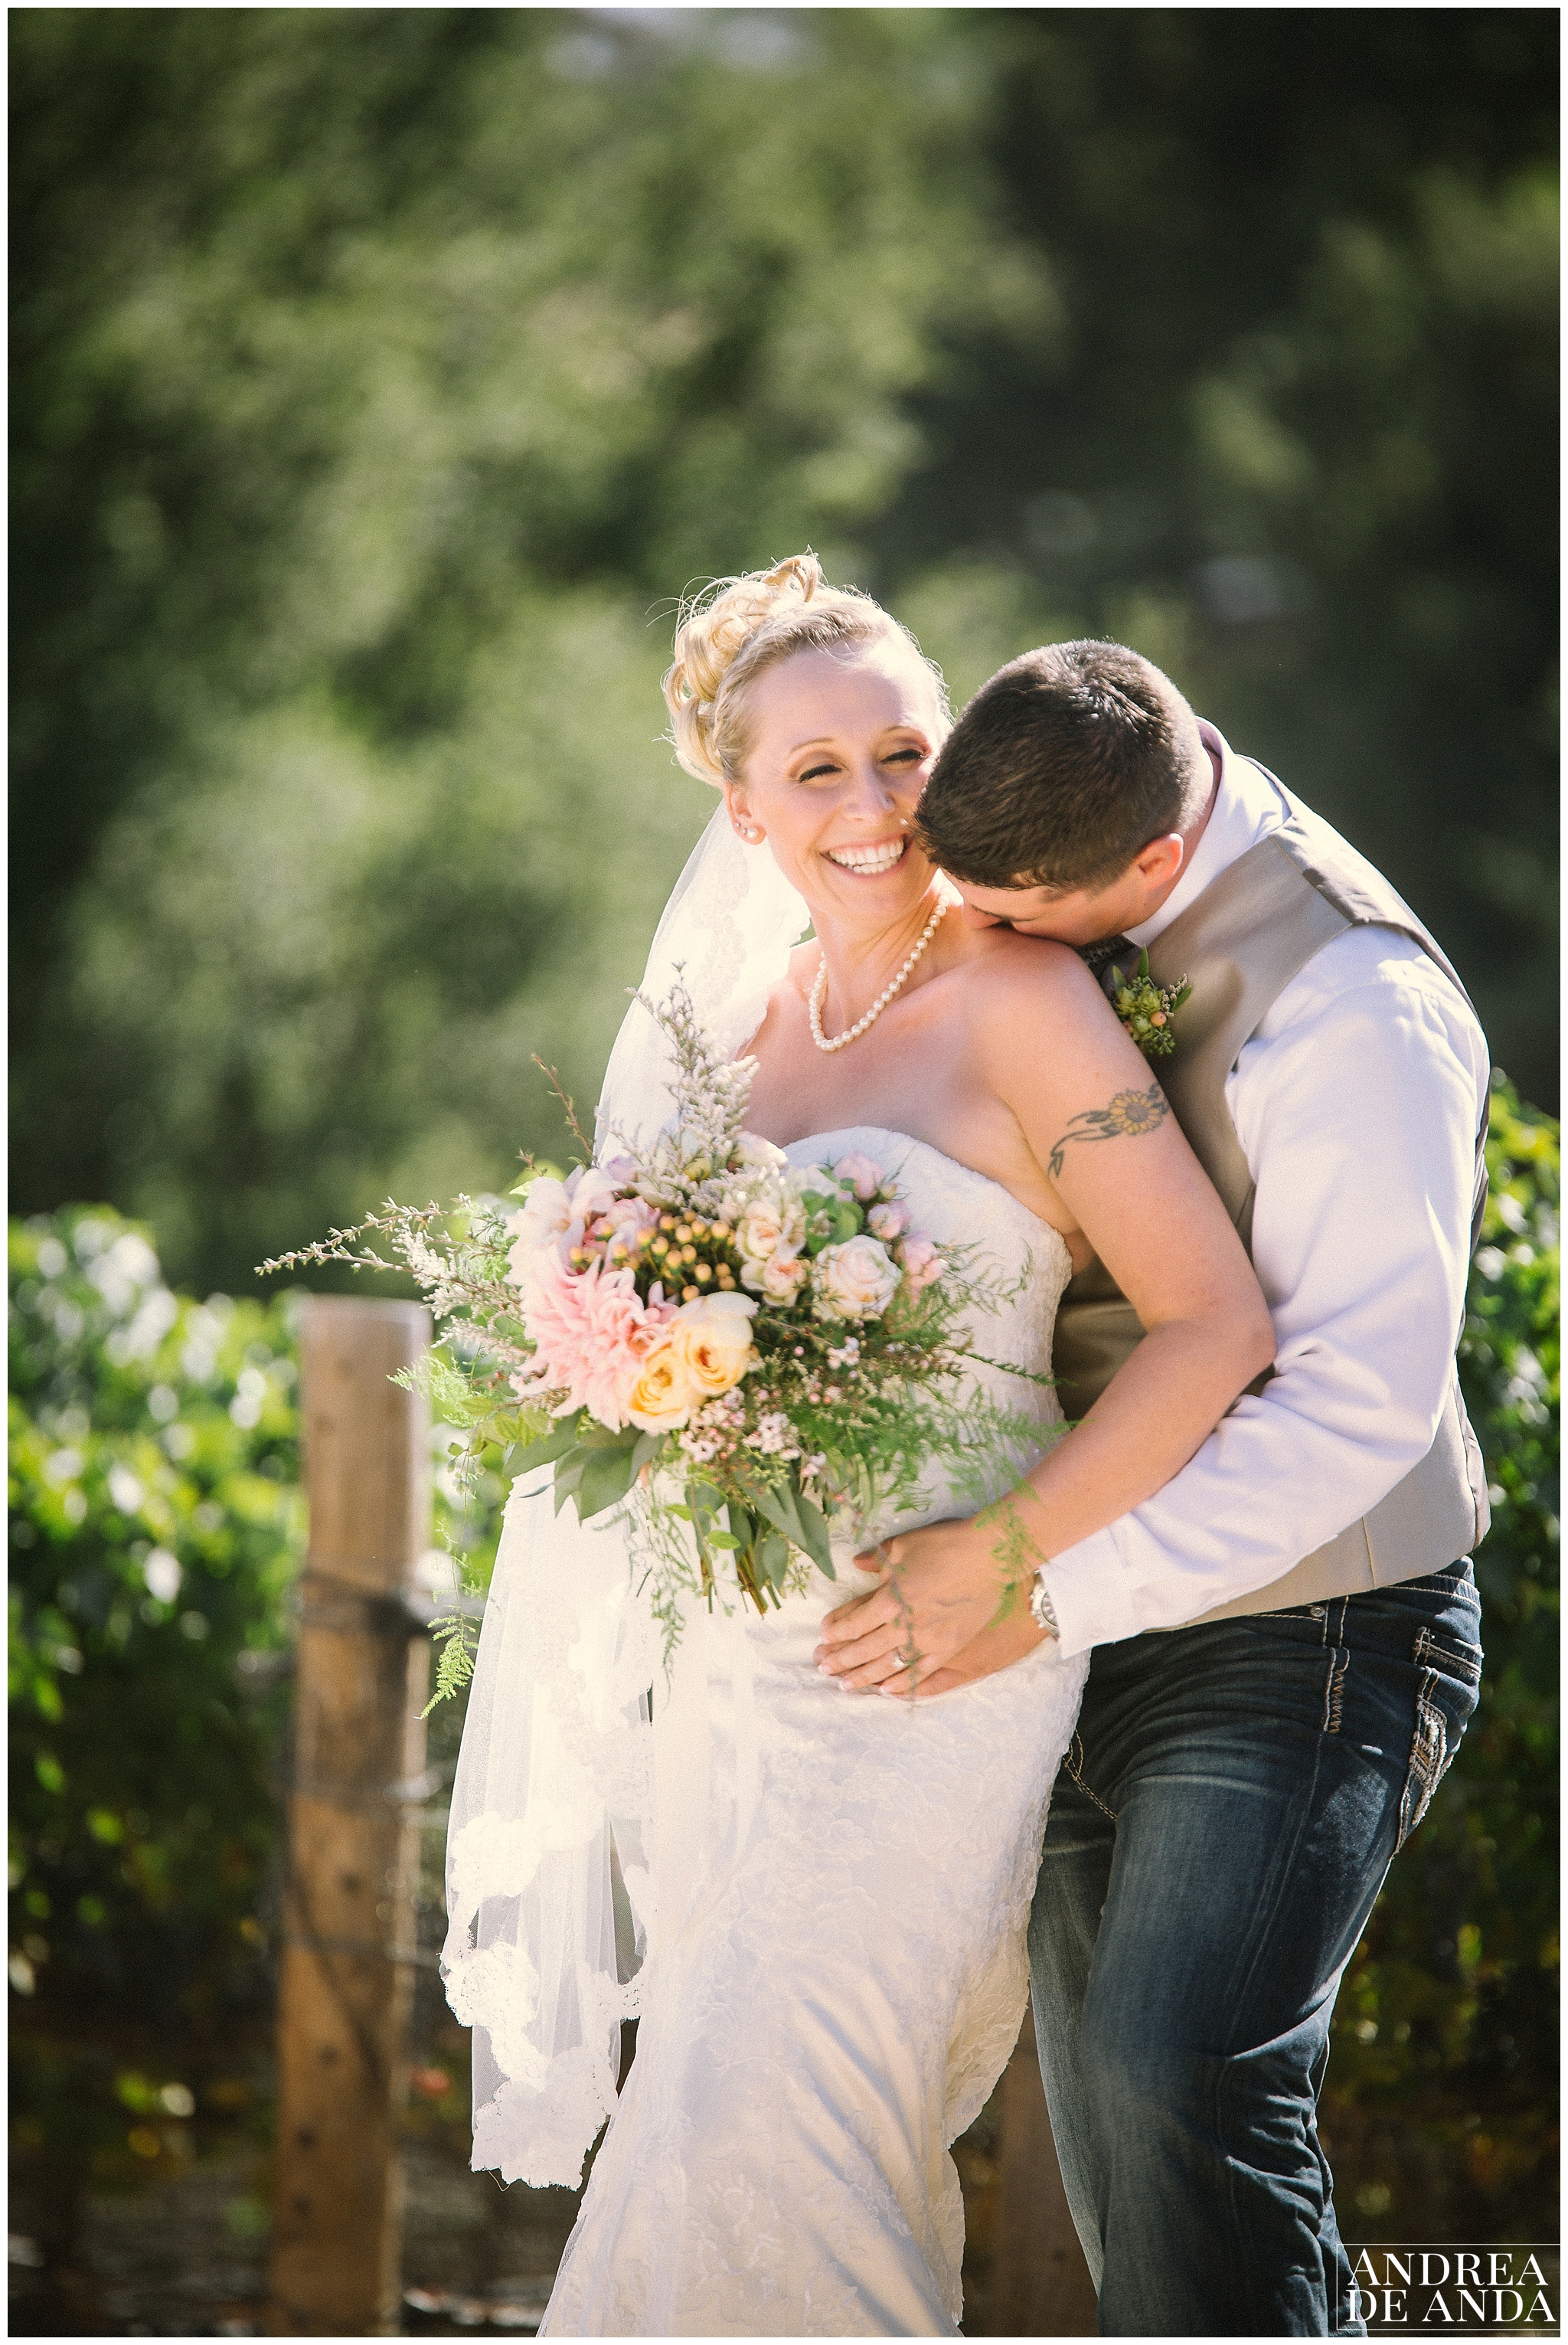 Santa Ynez Valley back yard wedding_Andrea de Anda Photography__0030.jpg